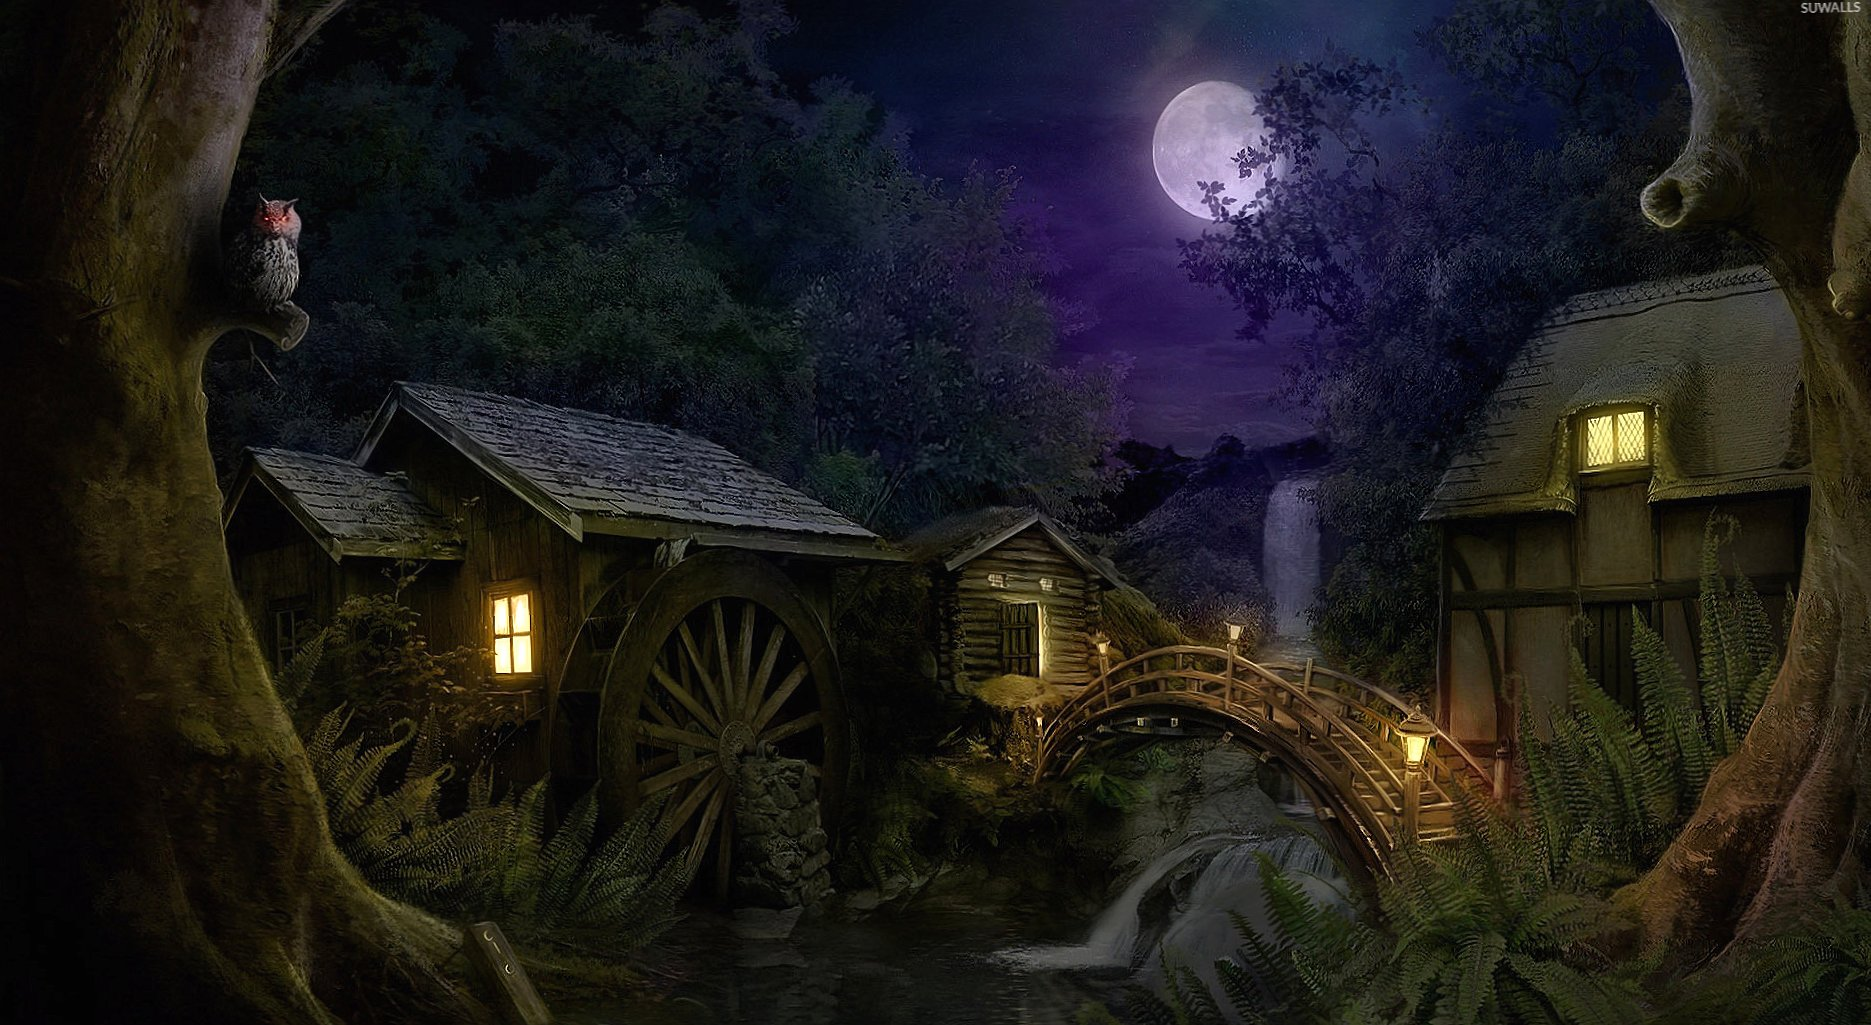 Hidden mill in the forest at night wallpapers HD quality